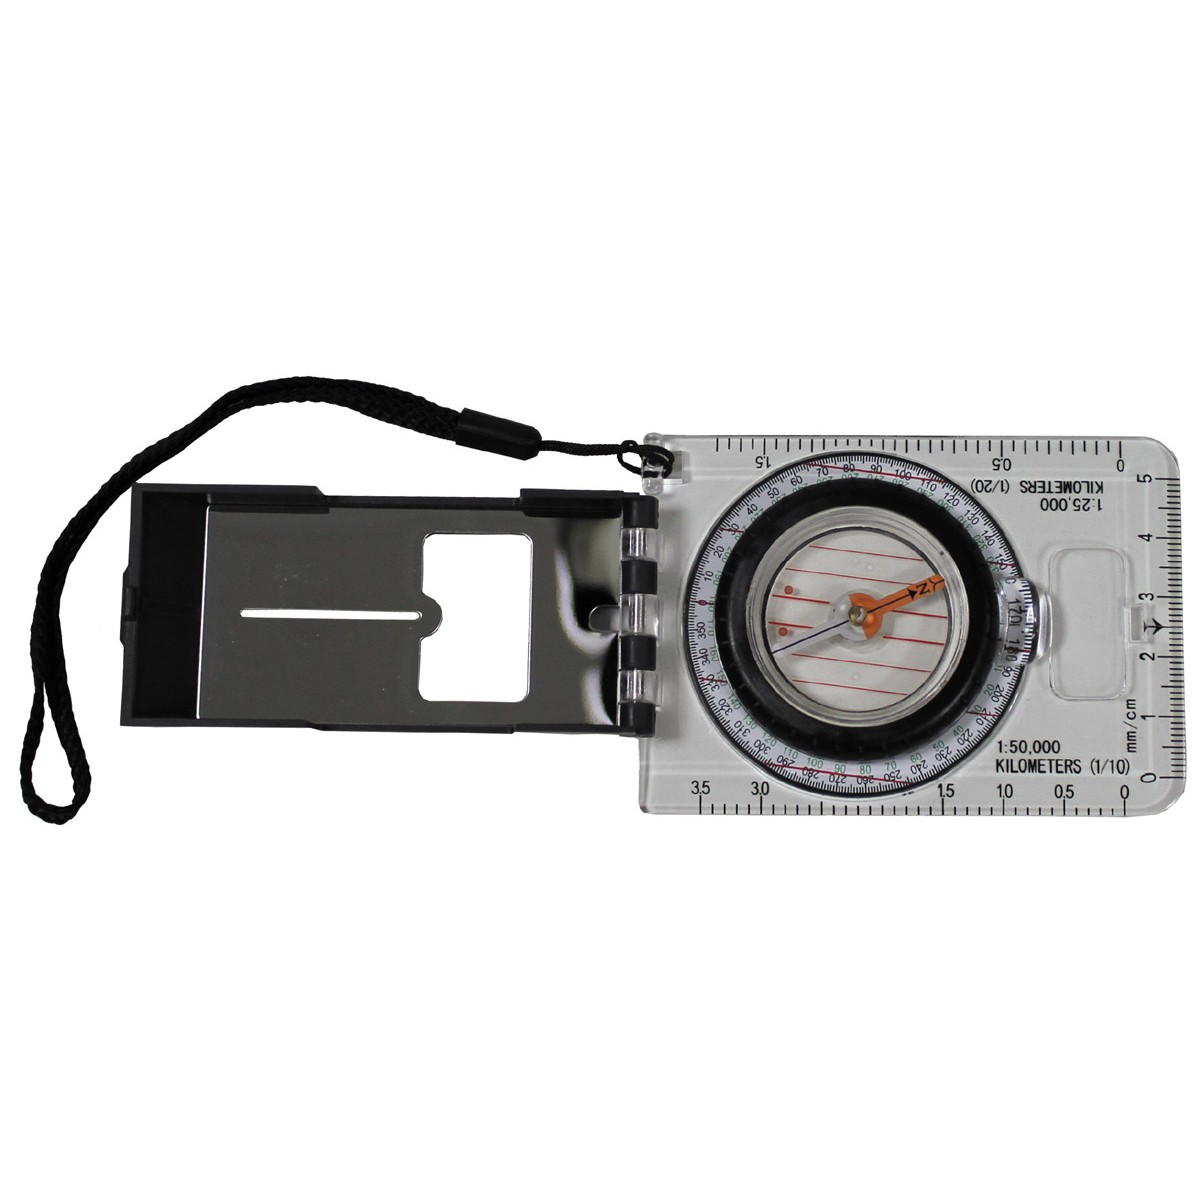 Professional Map Compass Magnifier Measuring Device